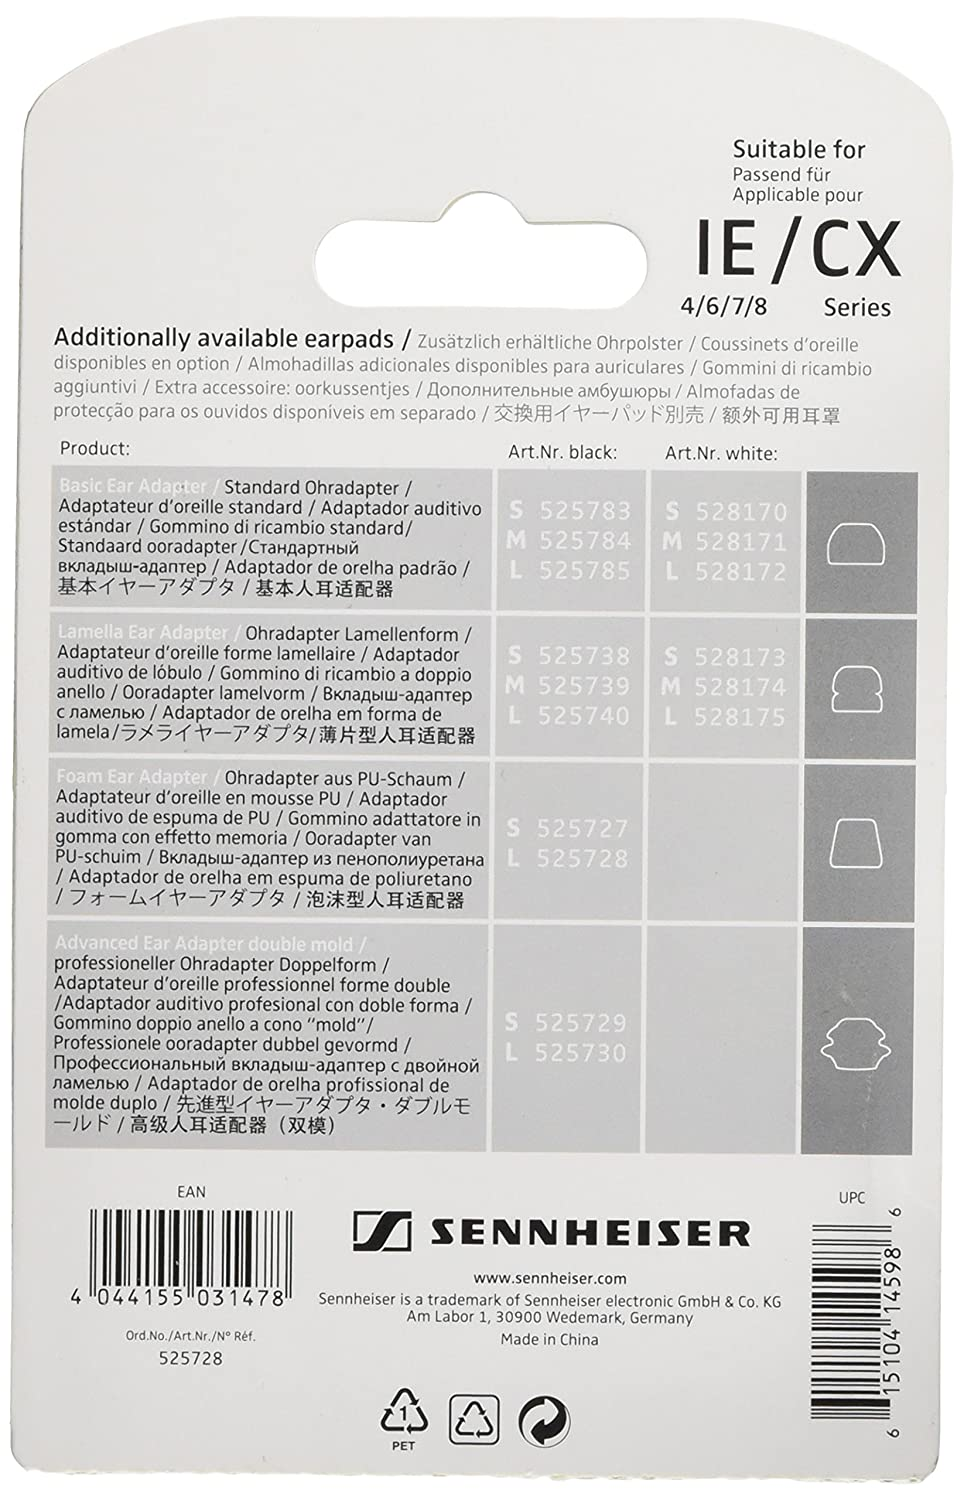 Amazon.com: [Domestic regular article] Sennheiser IE / CX replacement ear piece urethane foam Size L x 10 525728 (japan import): Home Audio & Theater